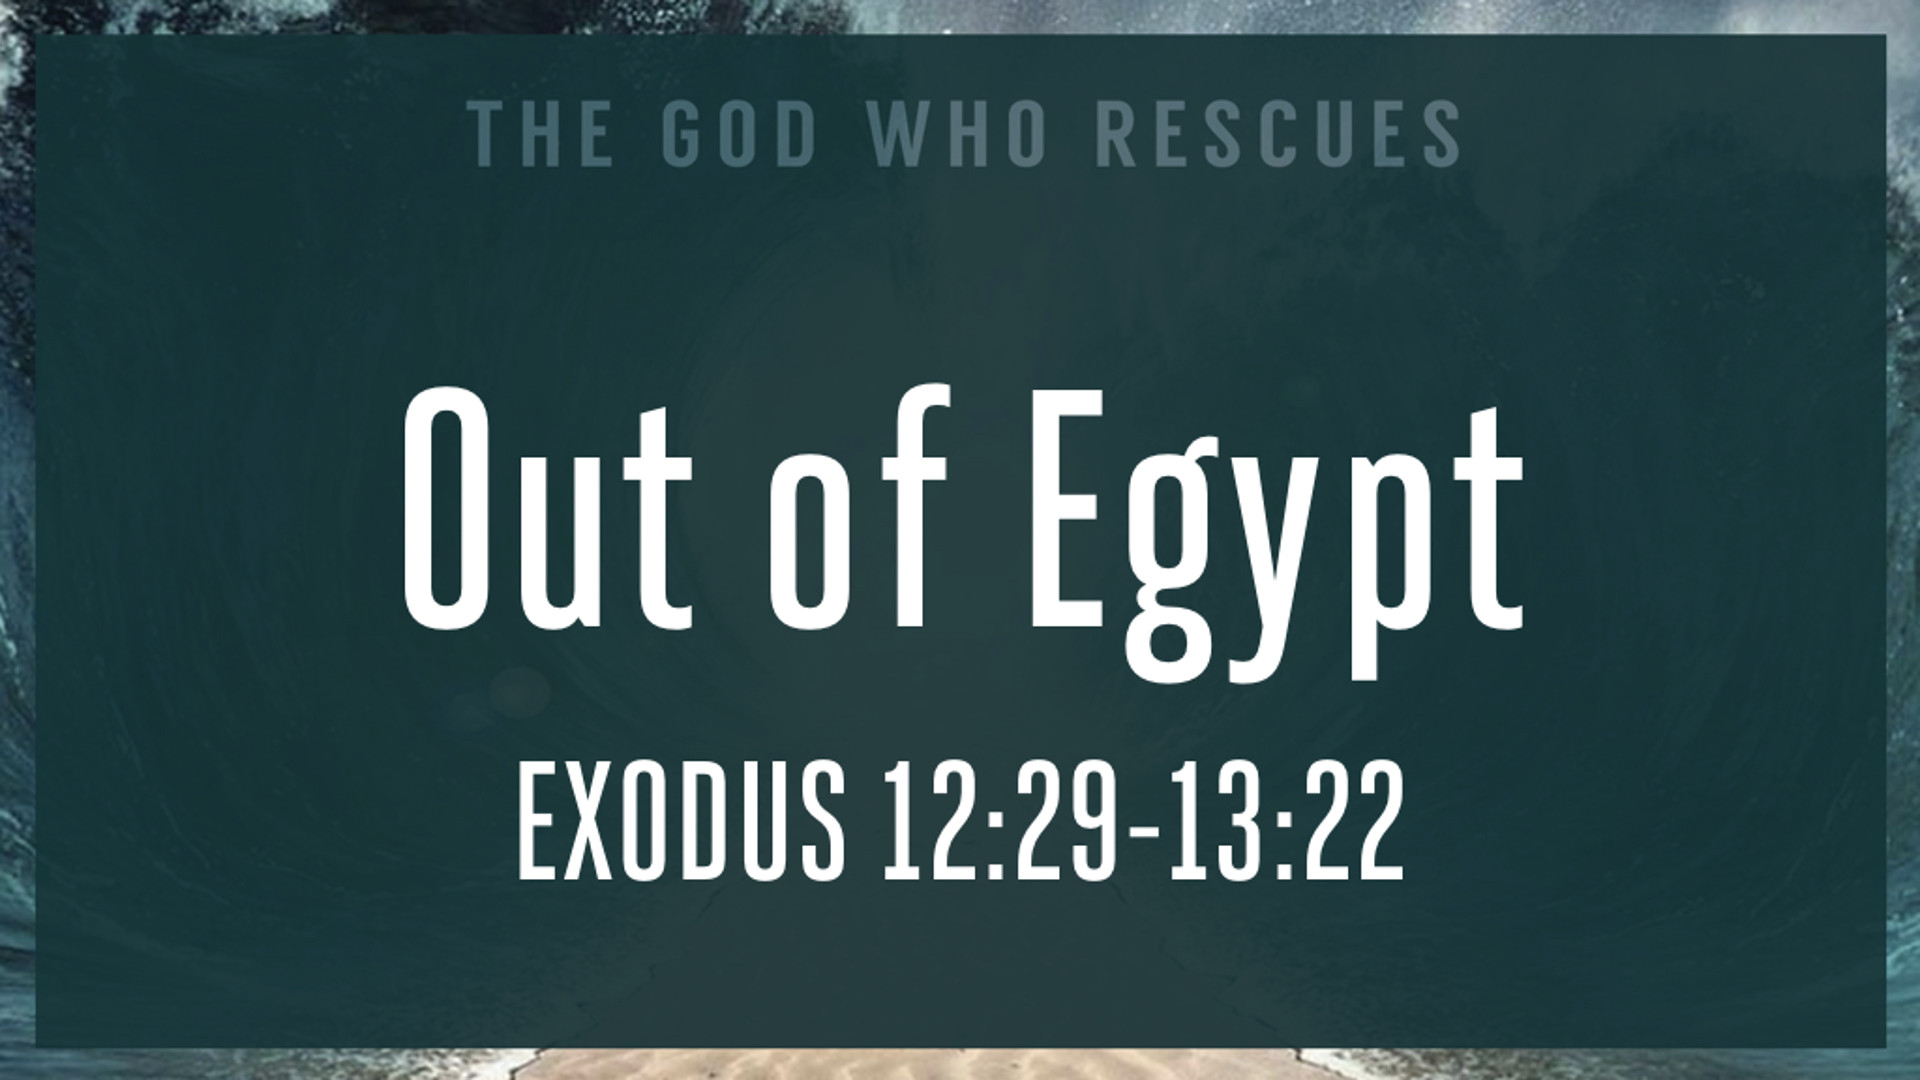 Exodus 12.29-13.22 Out of Egypt.jpg